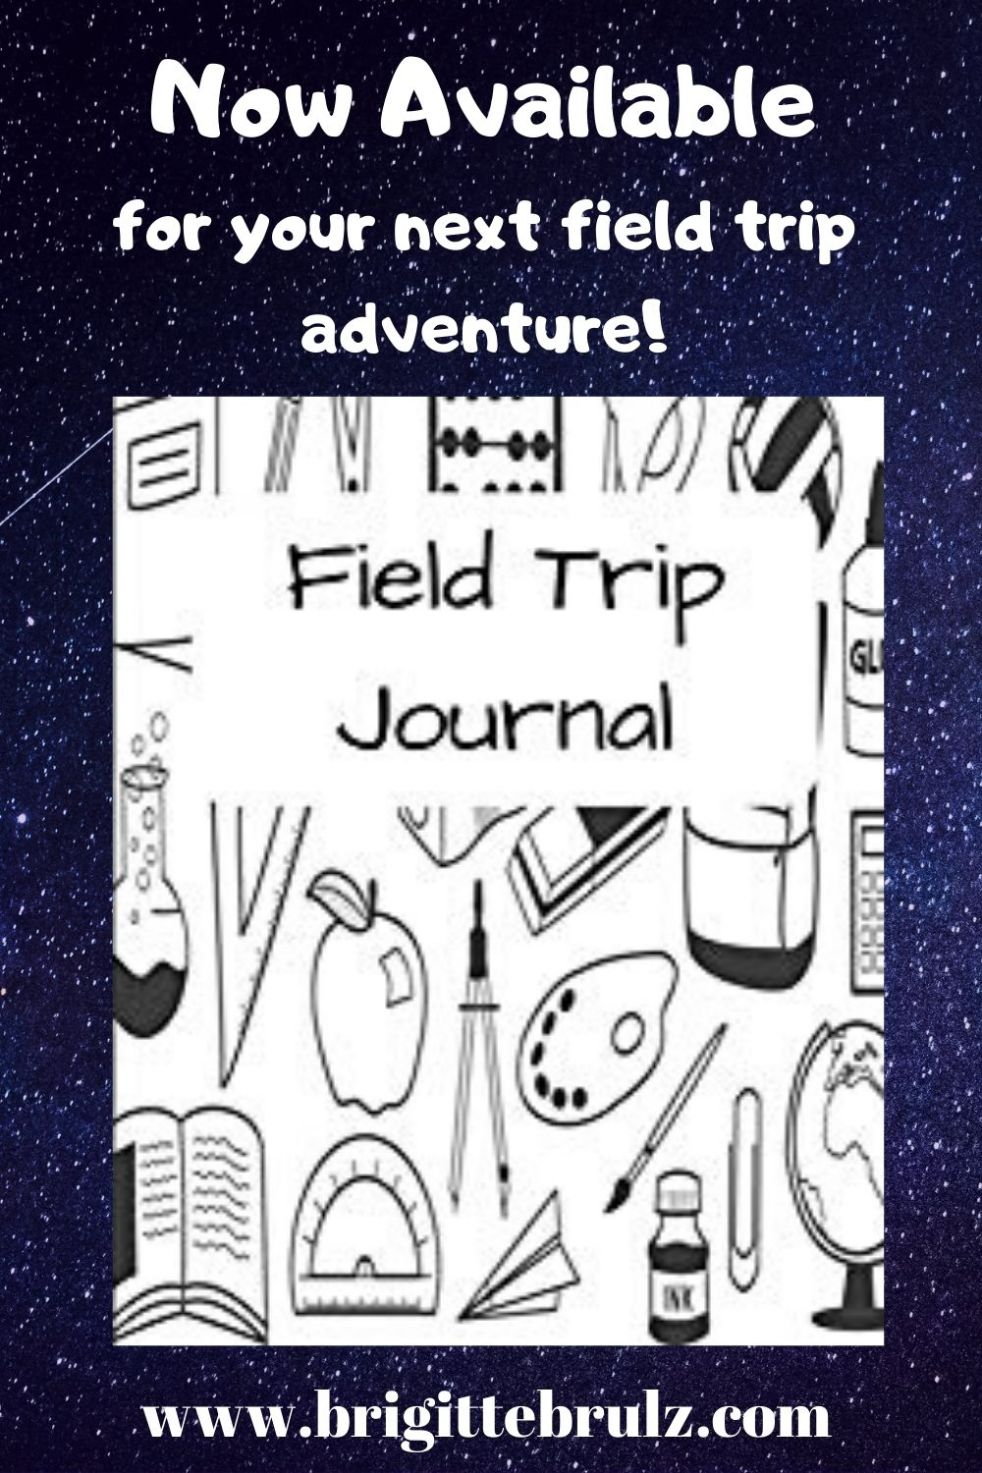 Field Trip Journal Now Available